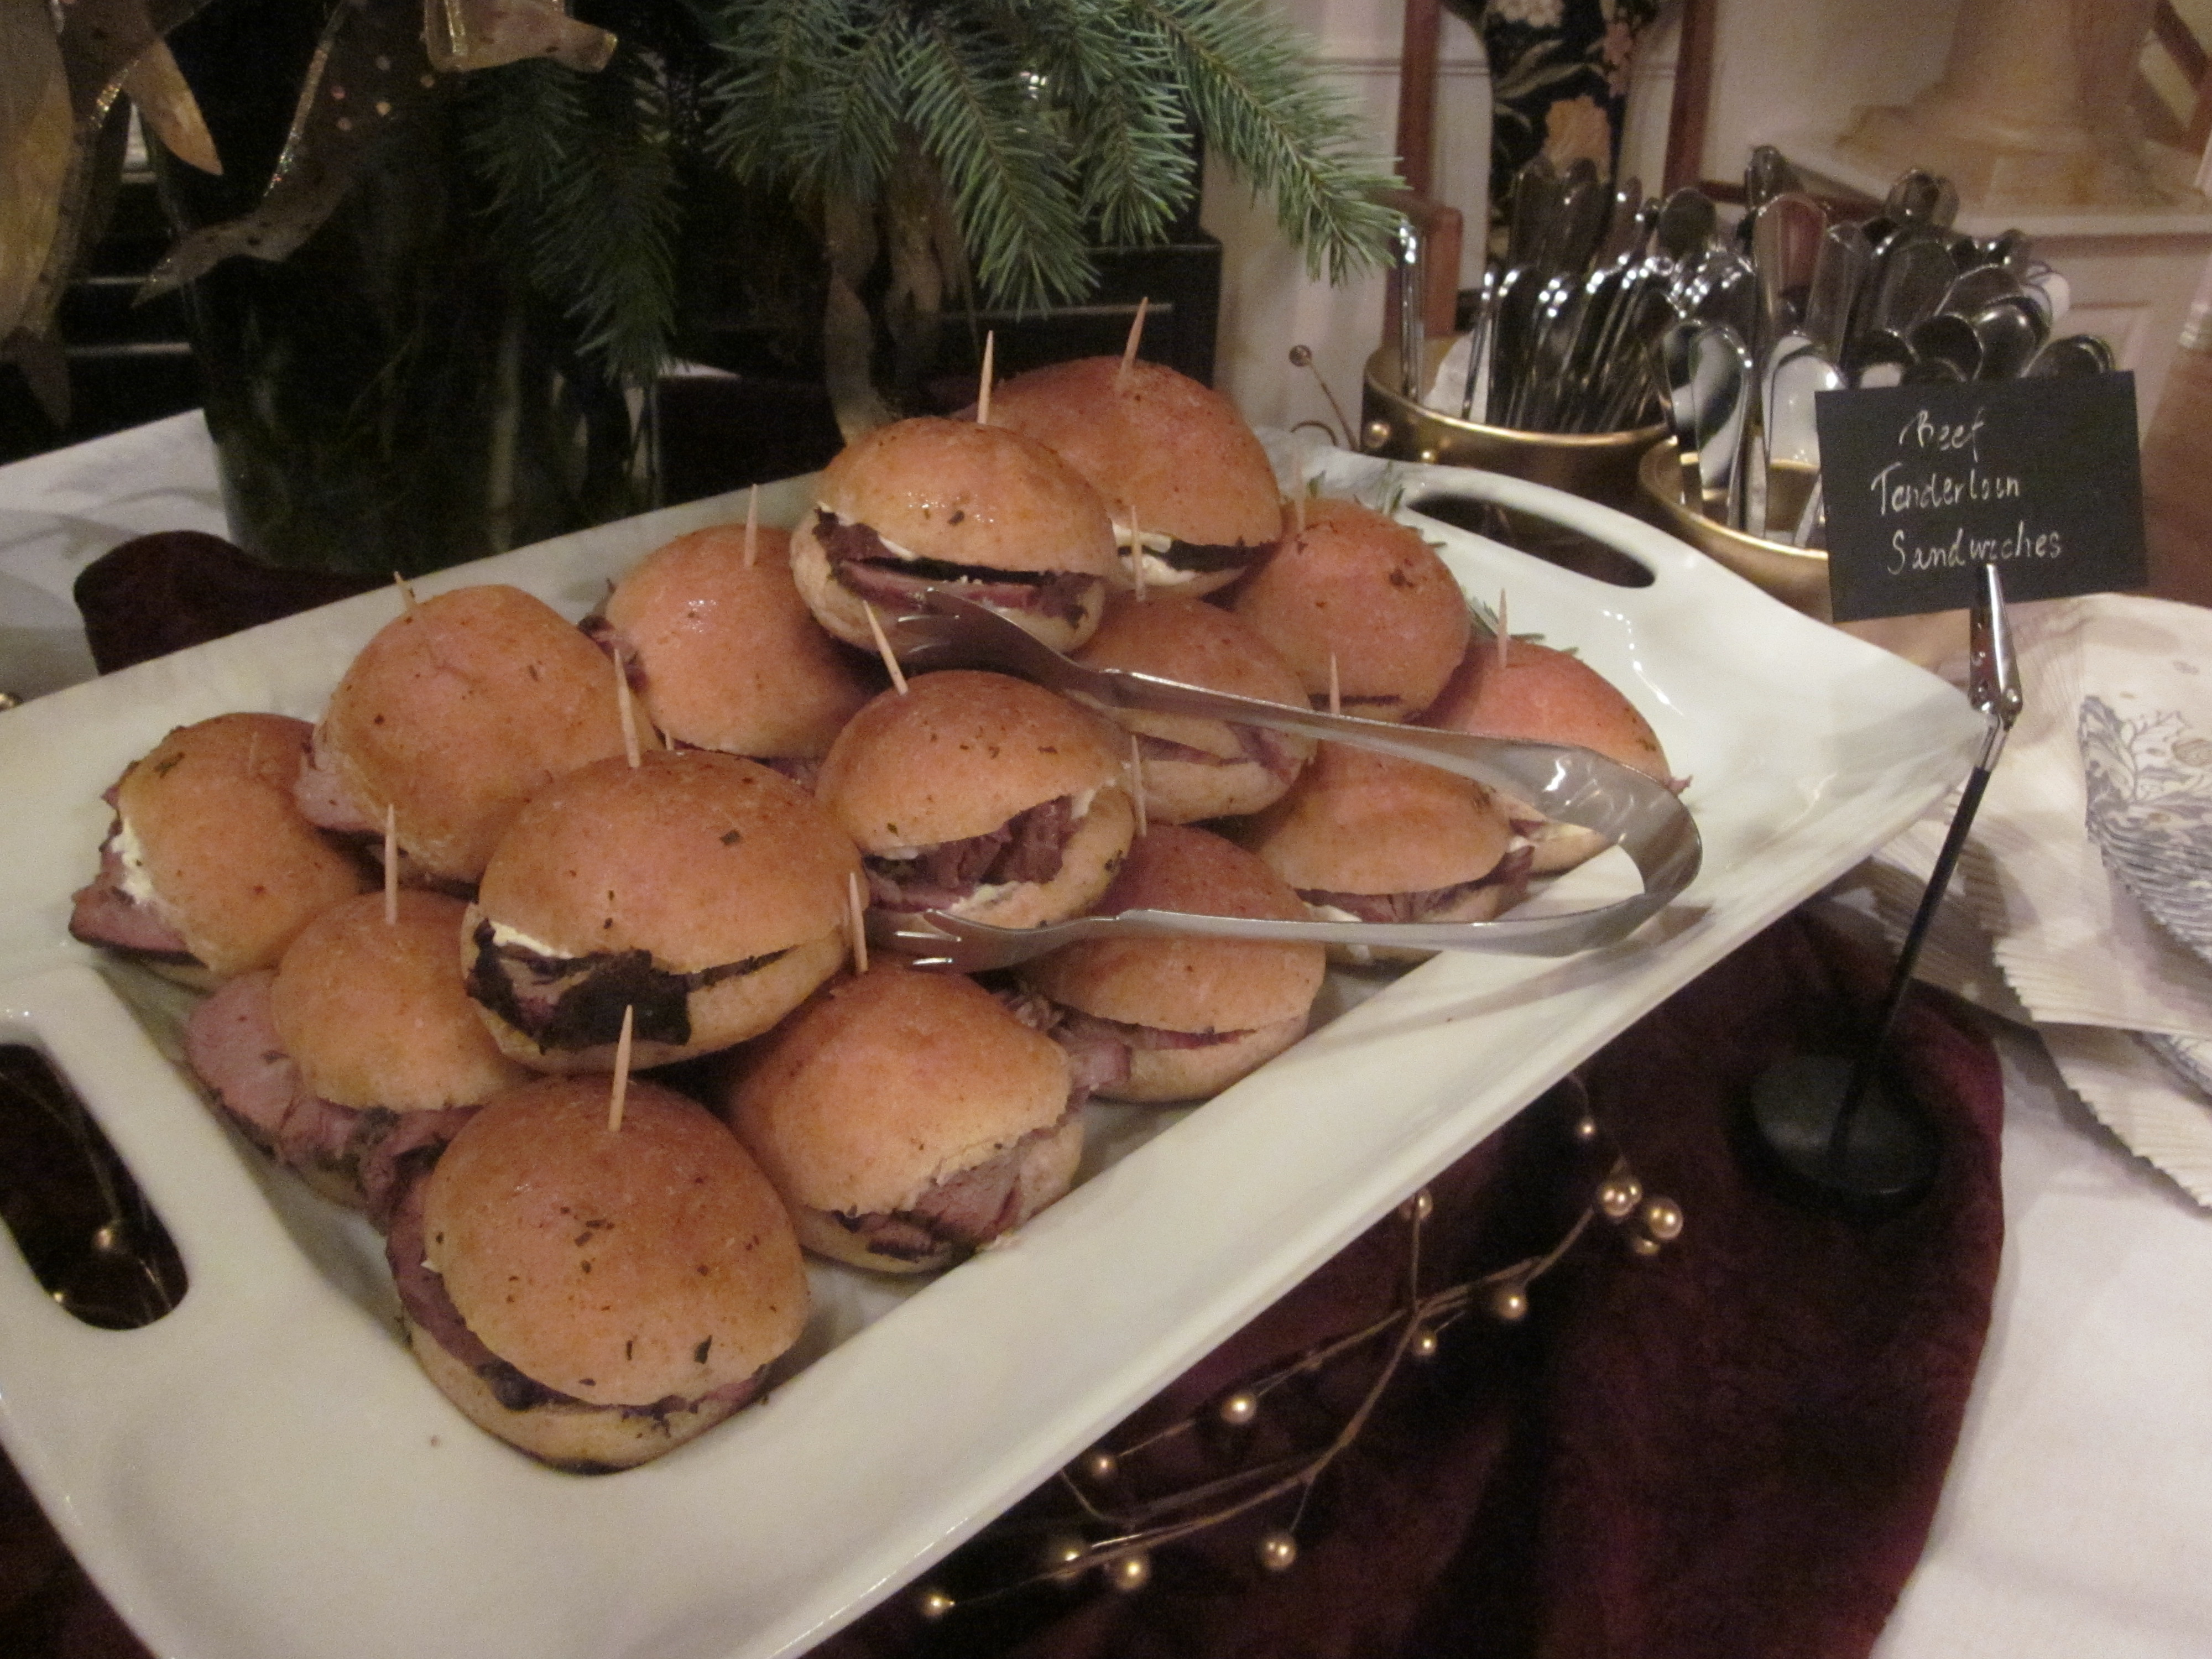 Just right for the party night. Mini sandwiches to delight